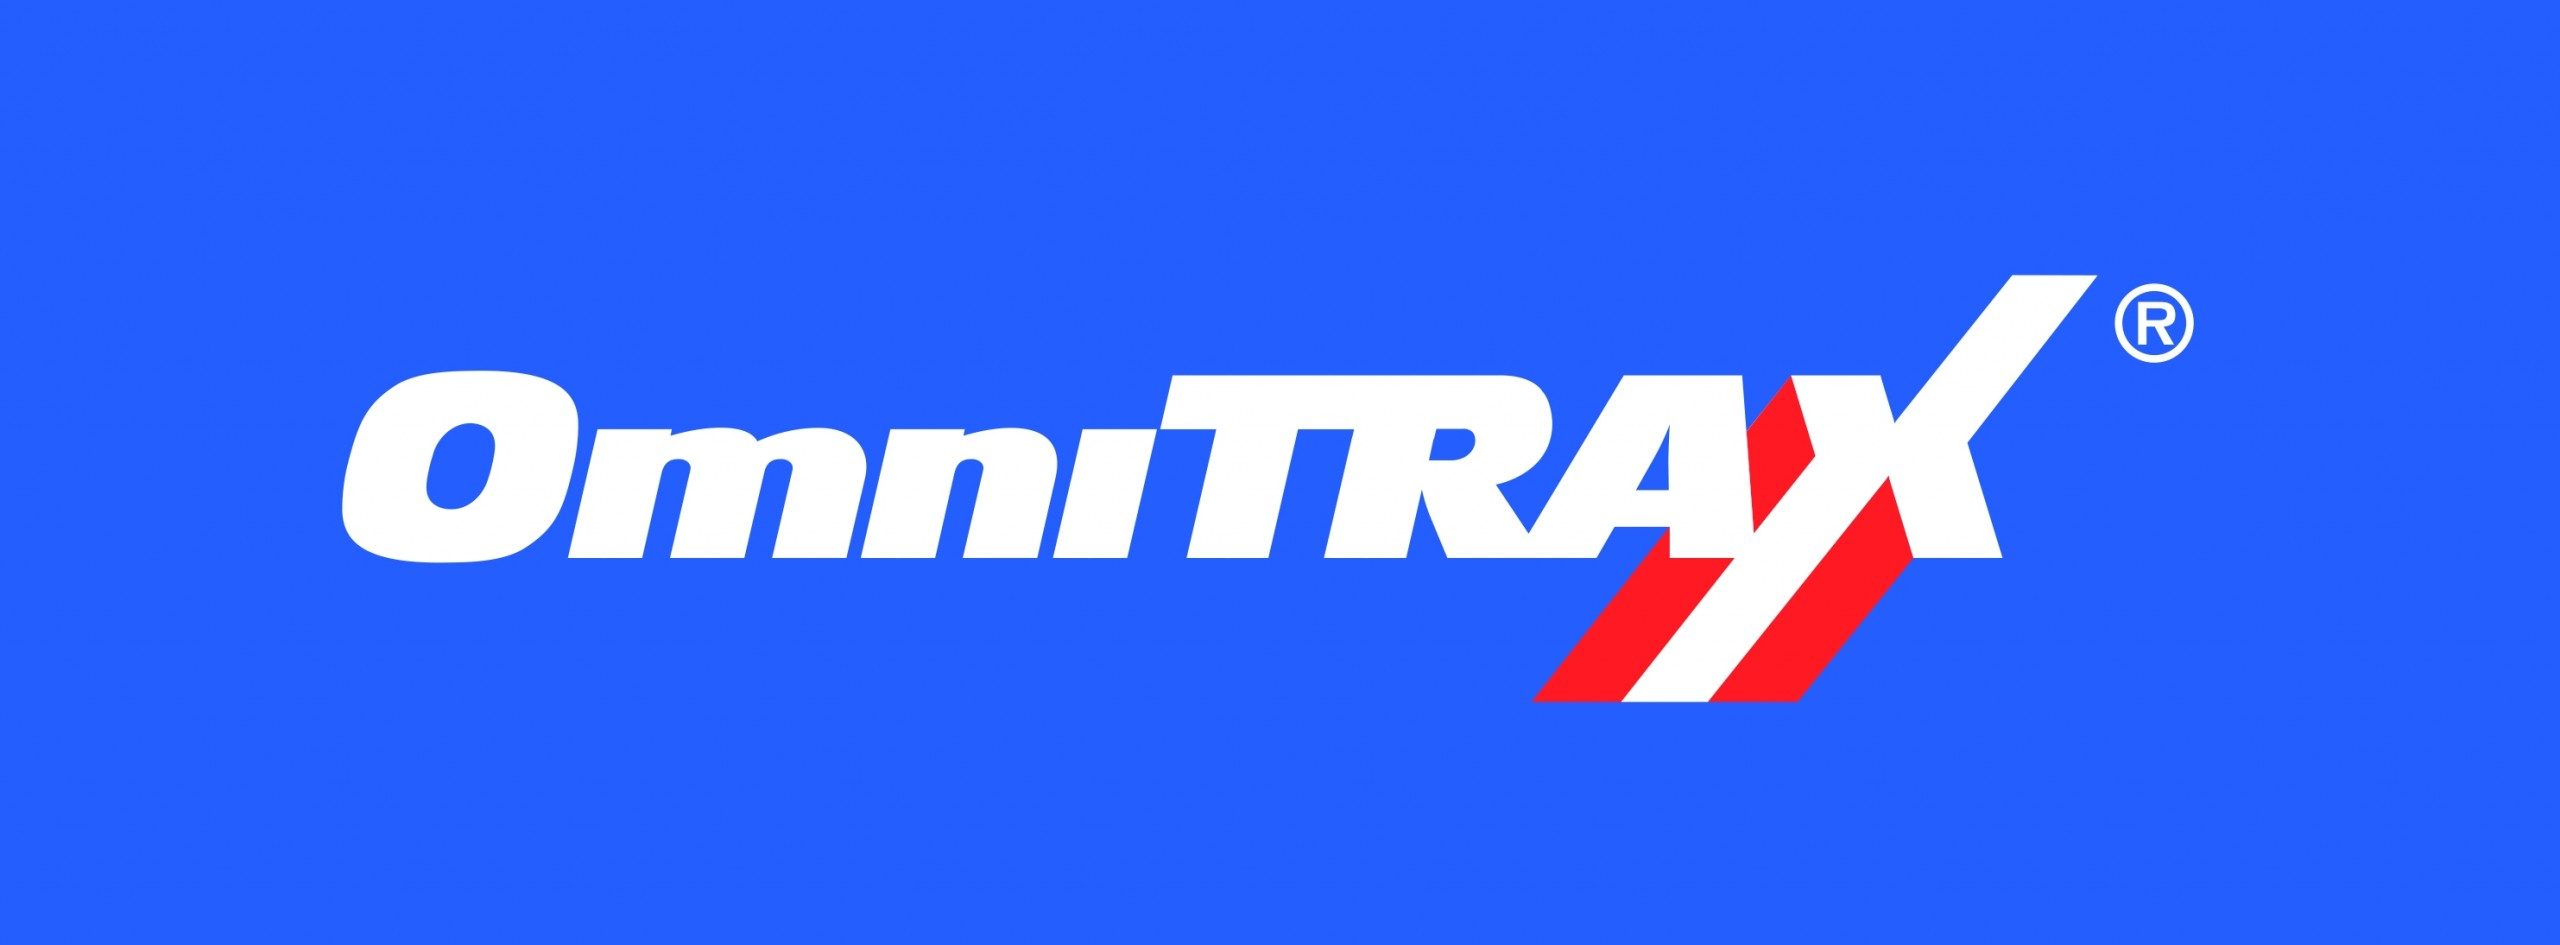 OmniTRAX Affiliate Partners with Topflight Grain Coop to Operate Decatur Central Railroad